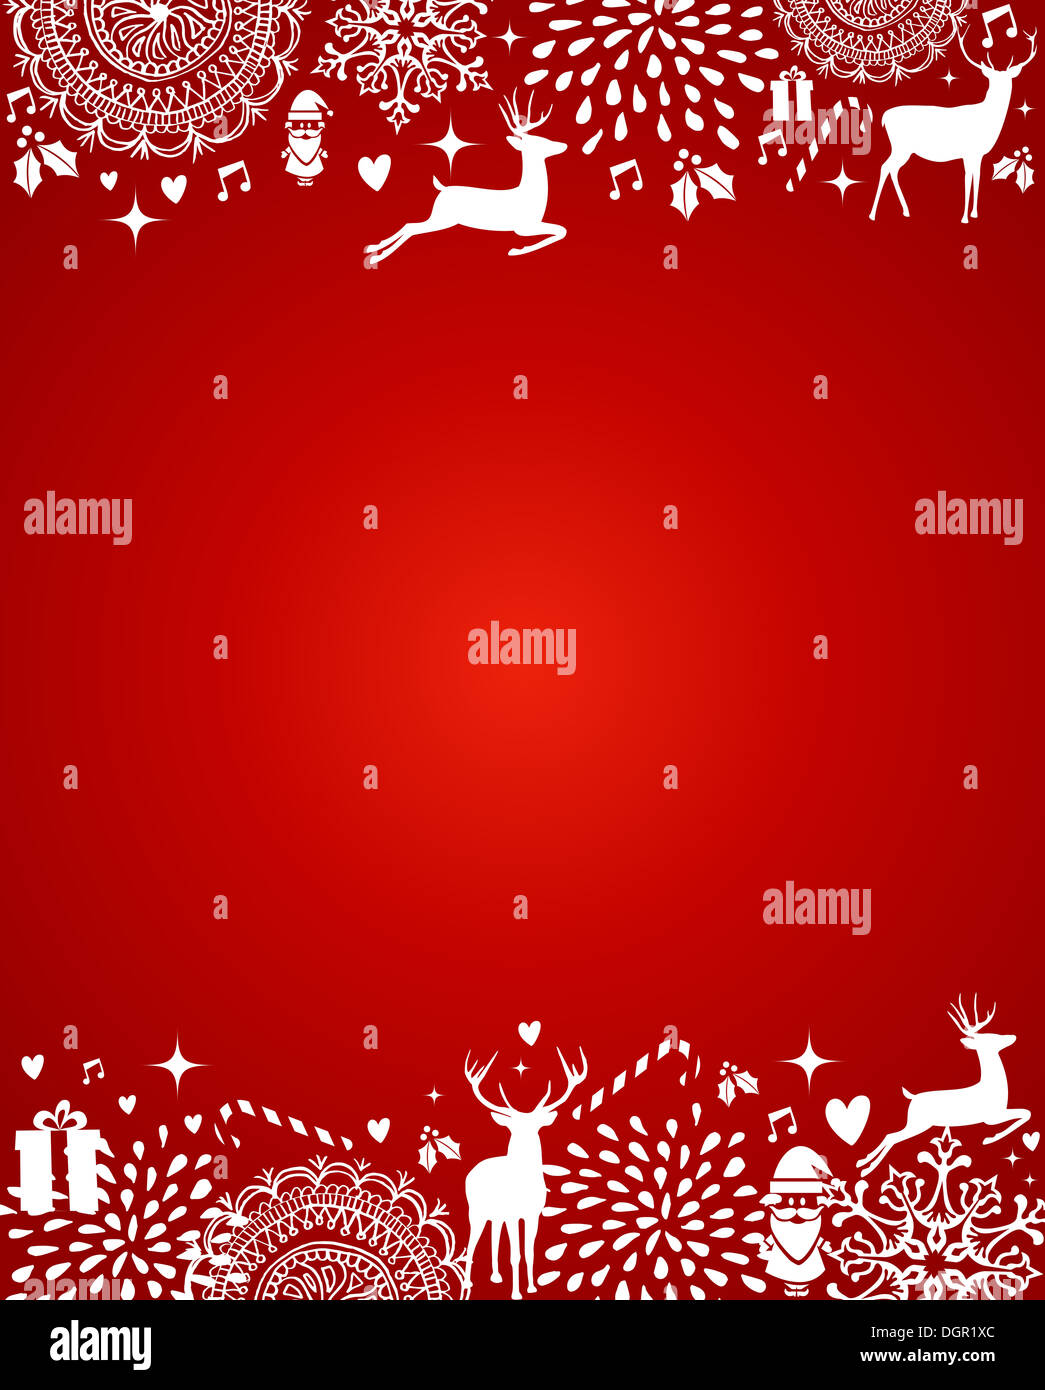 christmas decorations ornaments elements template red